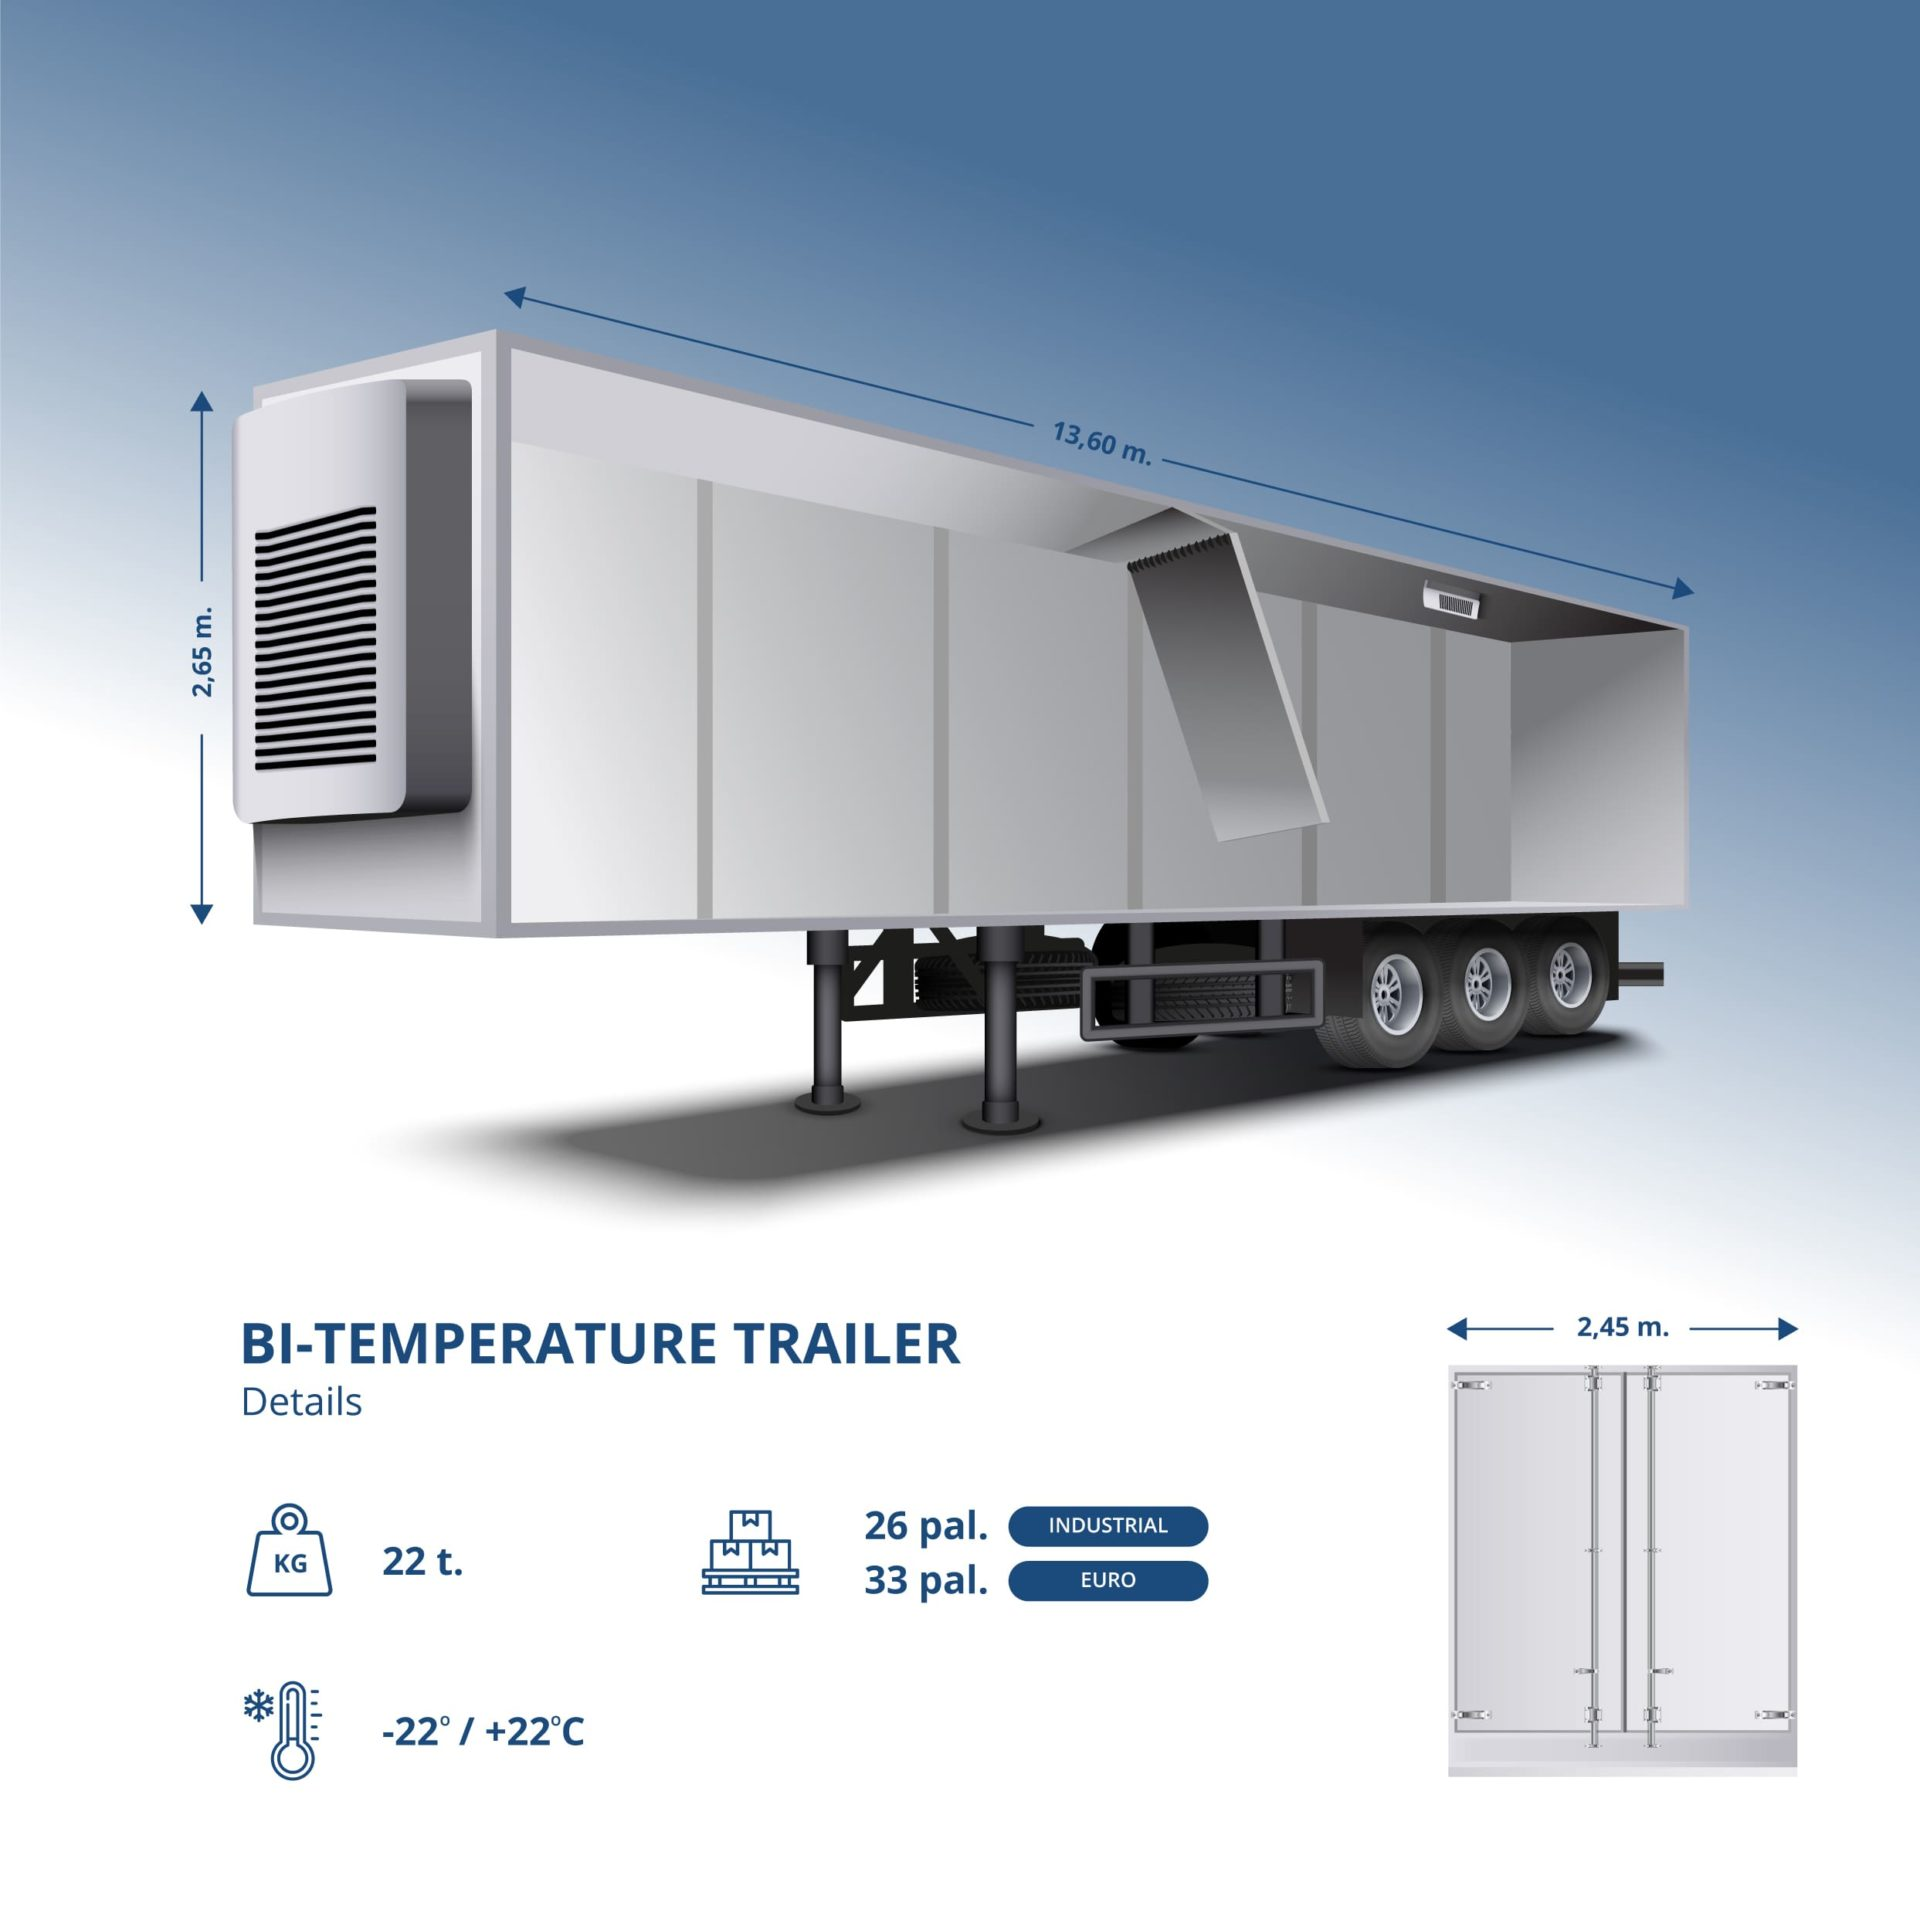 bi-temperature trailer